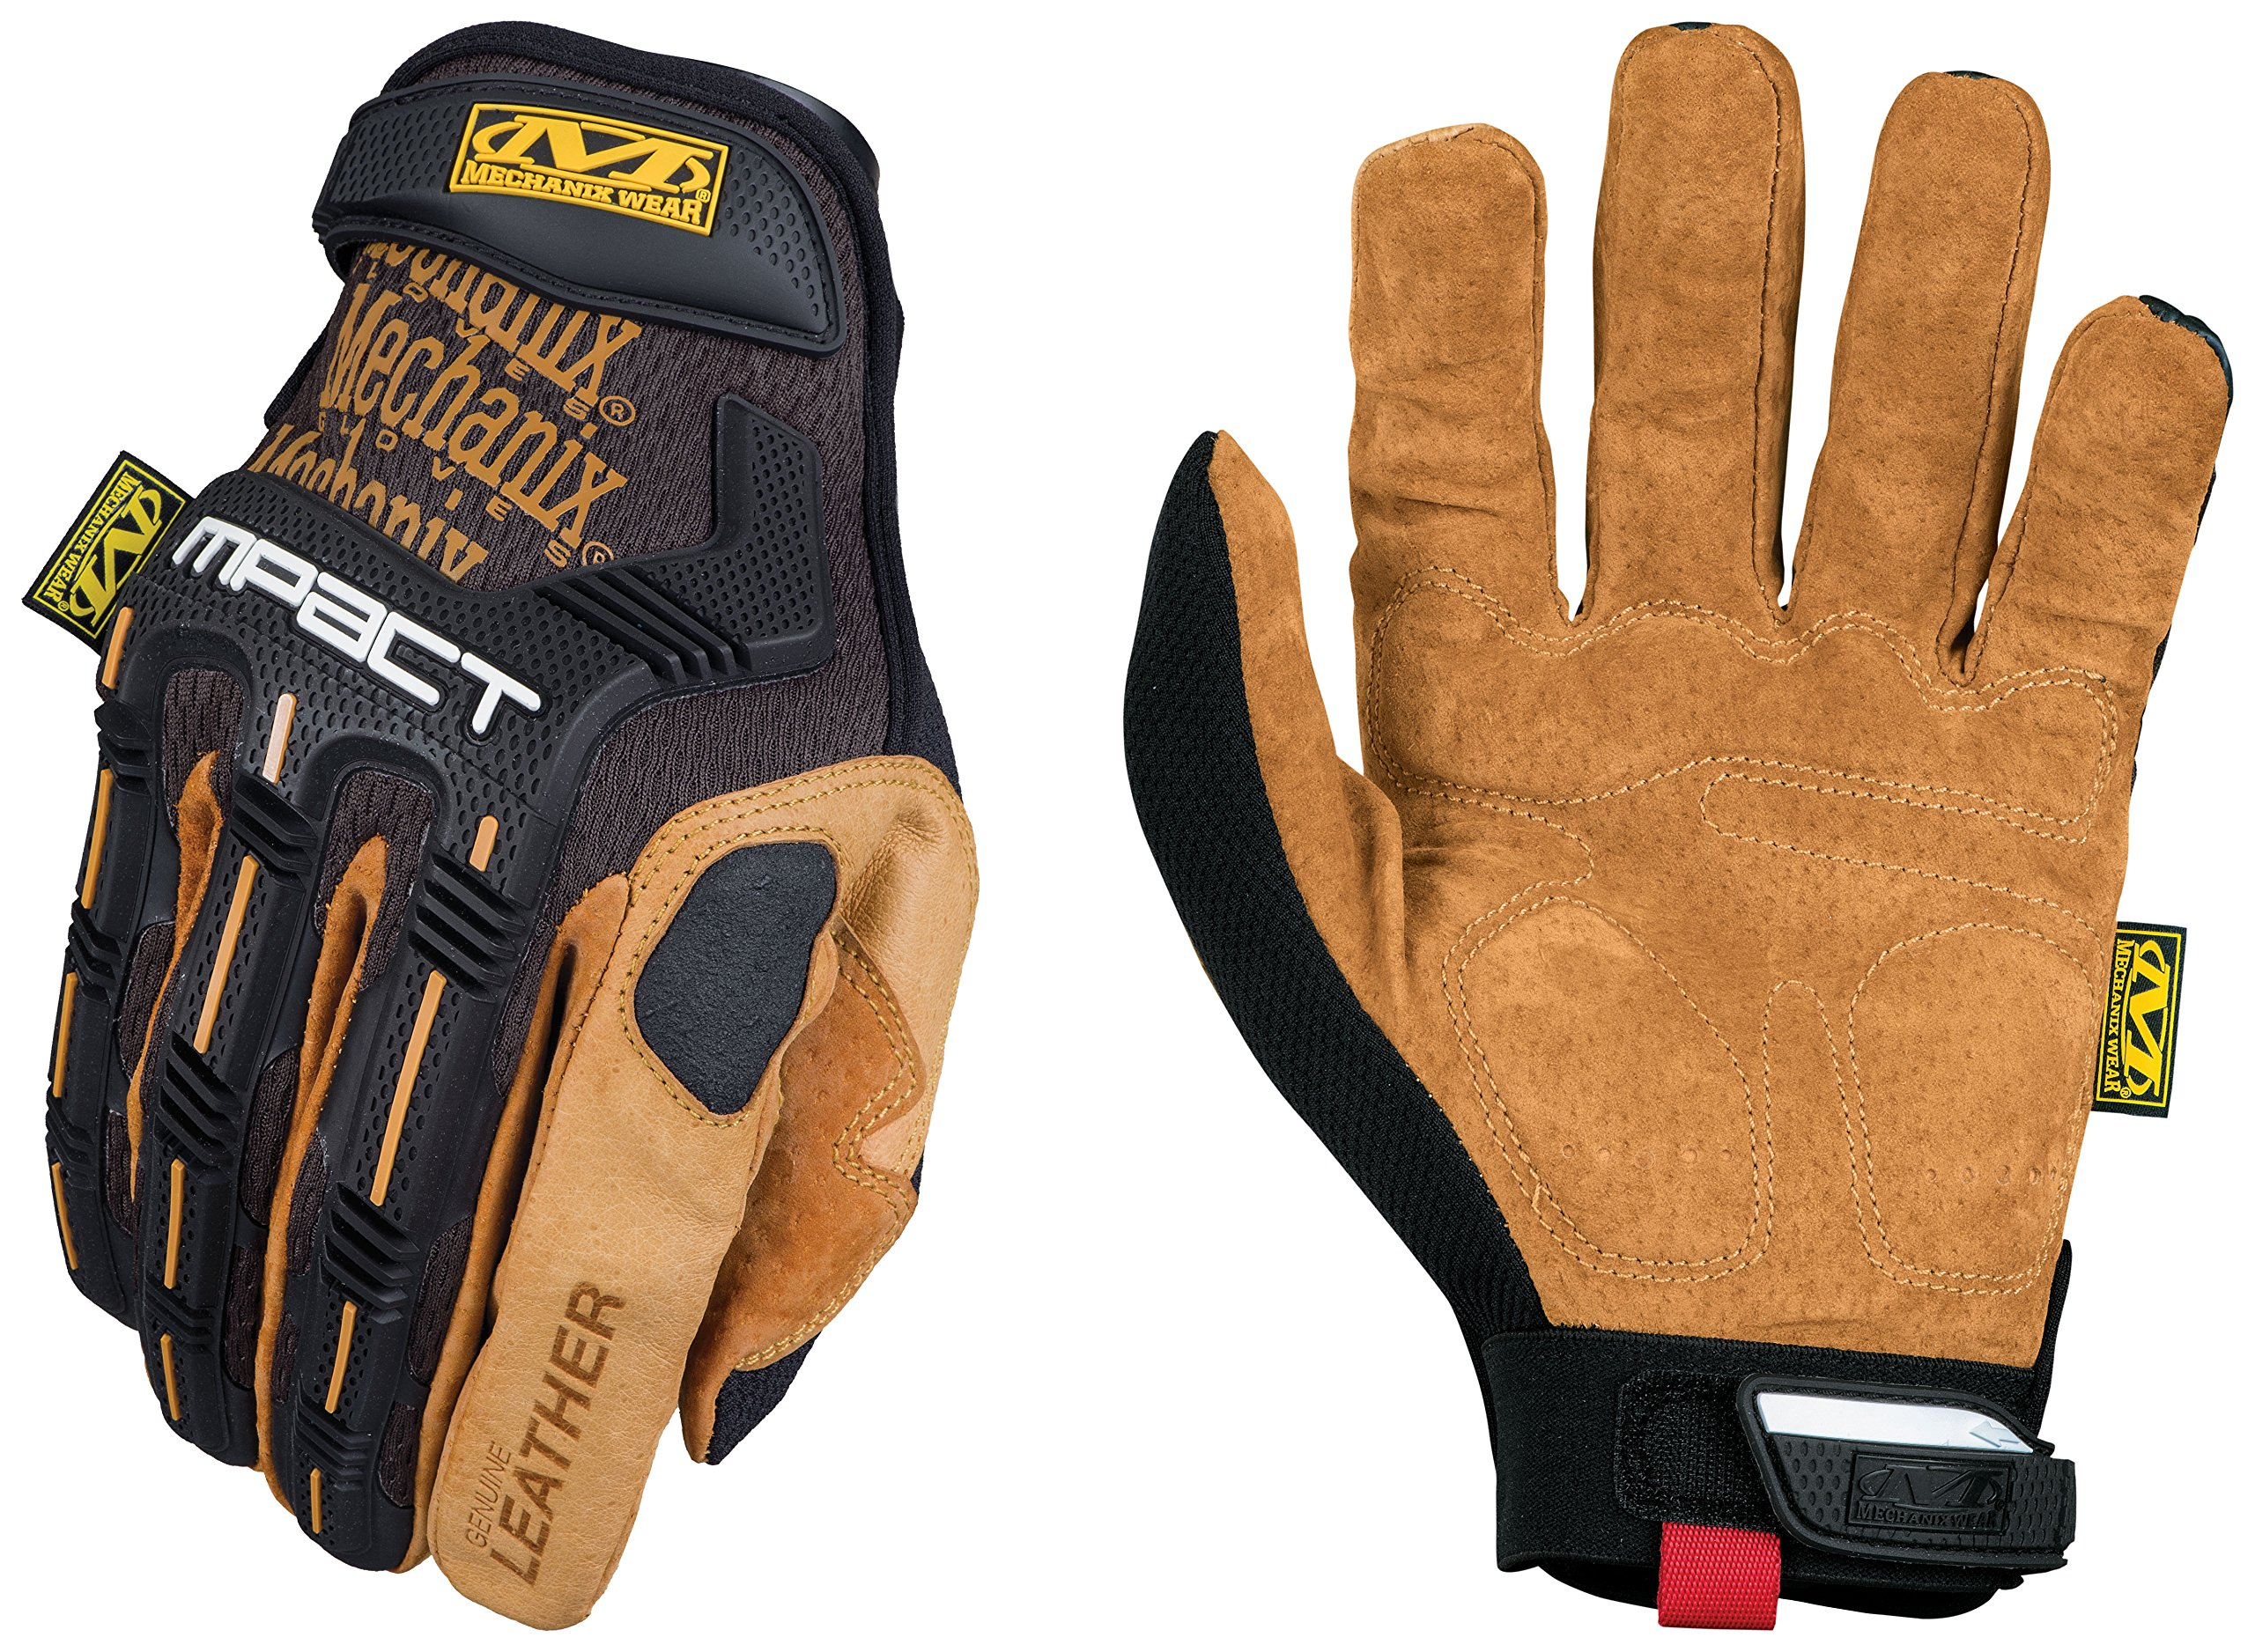 Mechanix Wear - Leather M-Pact Gloves (Large, Black/Brown) by Mechanix Wear (Image #1)